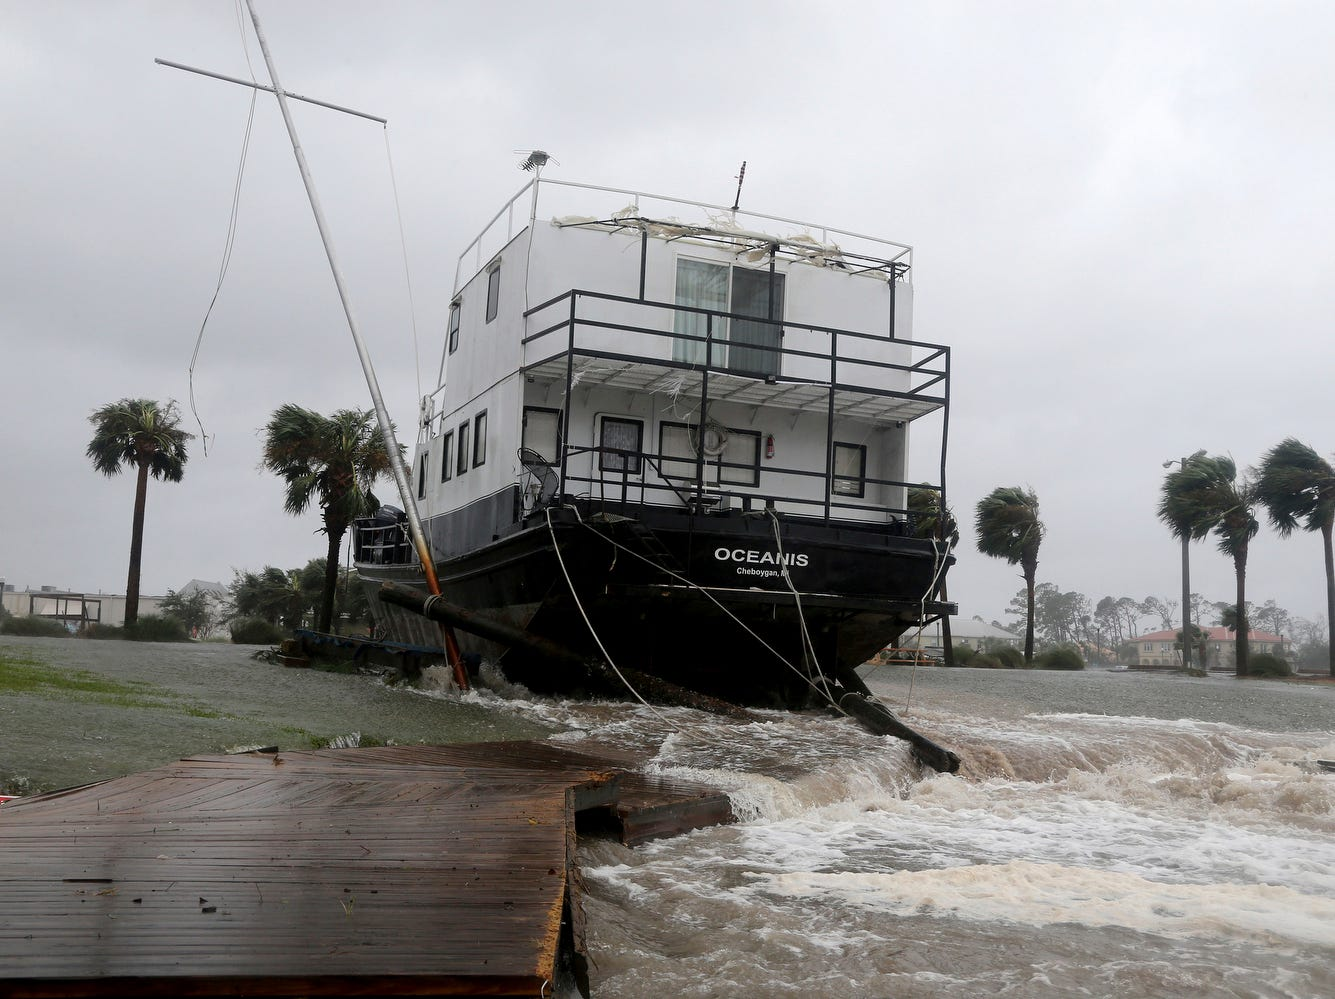 The Oceanis is grounded by a tidal surge at the Port St. Joe Marina, Wednesday, Oct. 10, 2018 in Port St. Joe, Fla. Supercharged by abnormally warm waters in the Gulf of Mexico, Hurricane Michael slammed into the Florida Panhandle with terrifying winds of 155 mph Wednesday, splintering homes and submerging neighborhoods. (Douglas R. Clifford/Tampa Bay Times via AP) ORG XMIT: FLPET302